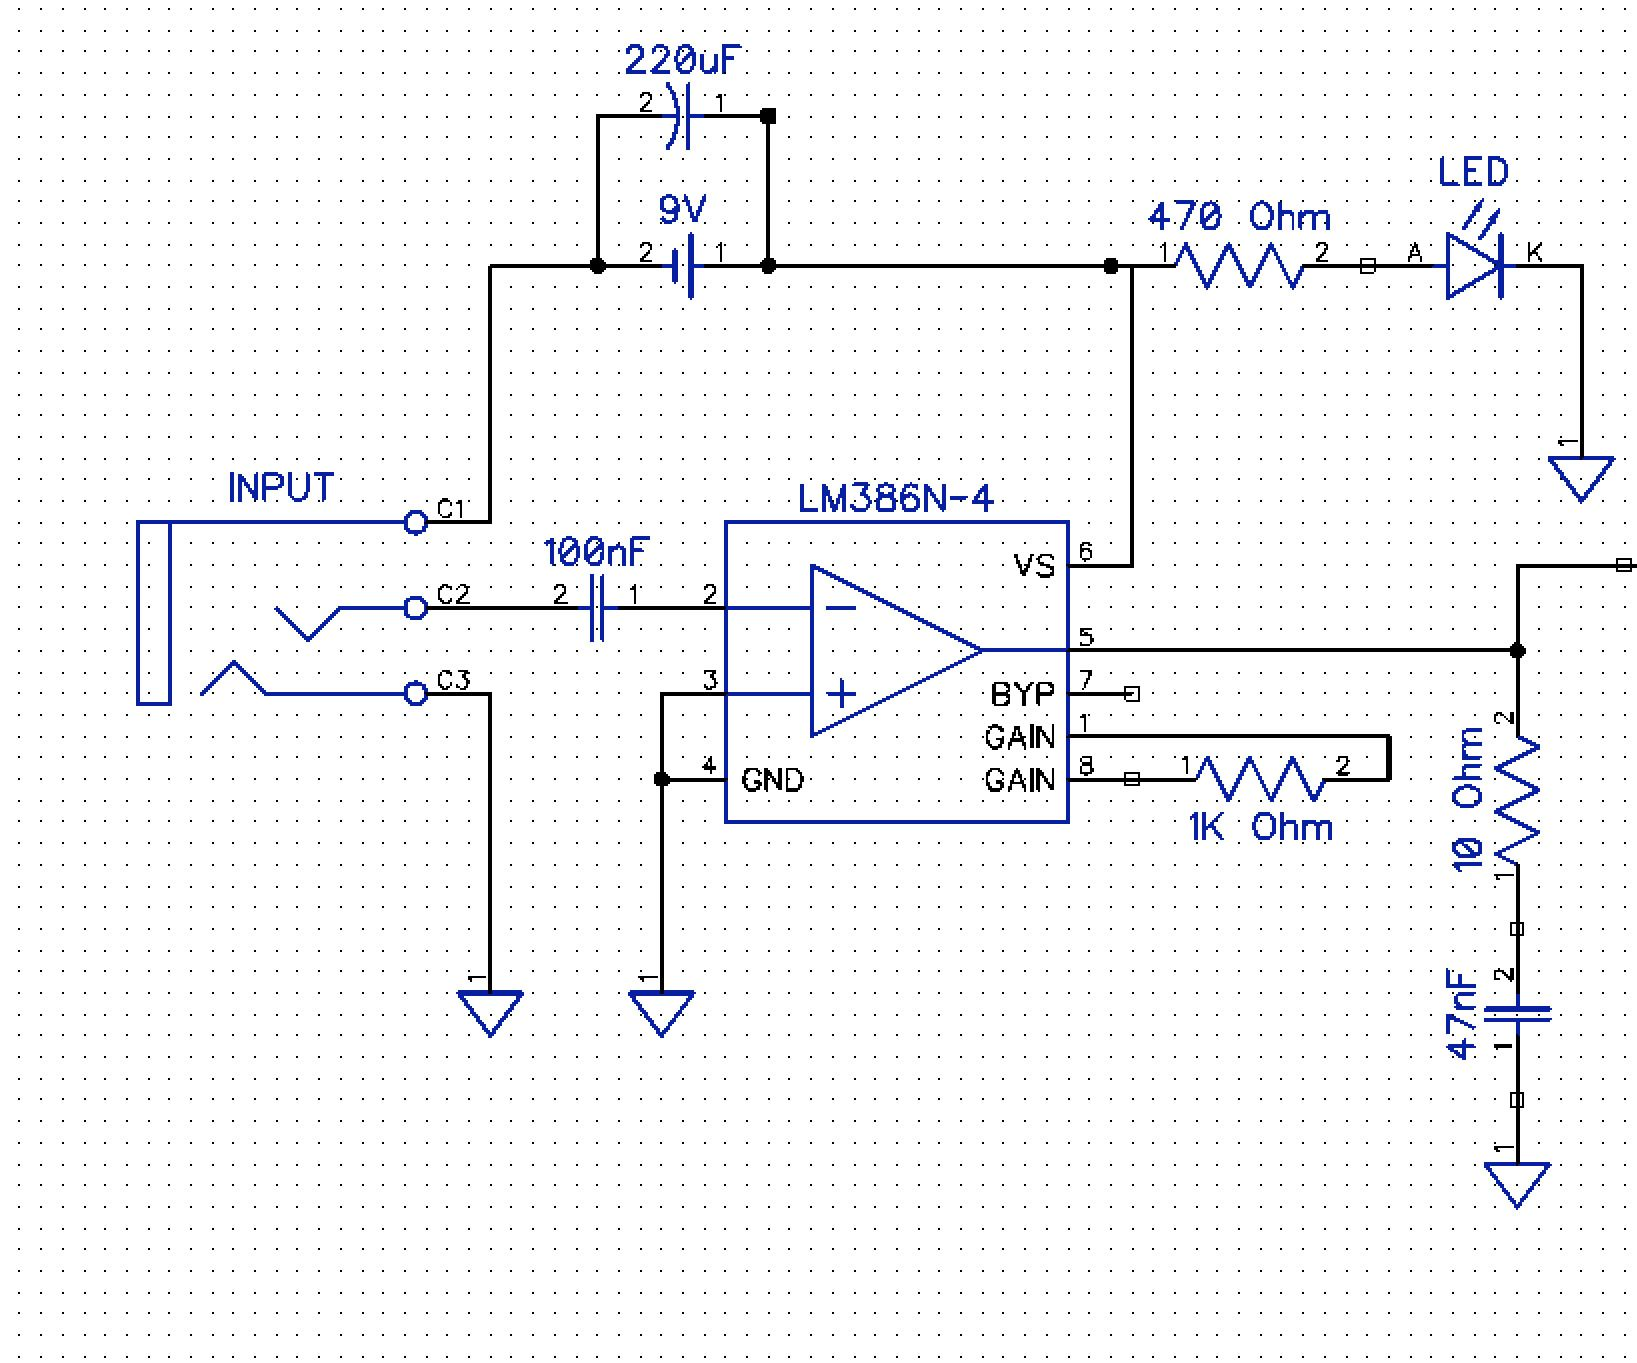 from schematic to protoboard building a simple lm386 guitar amp on a dip protoboard [ 1637 x 1363 Pixel ]